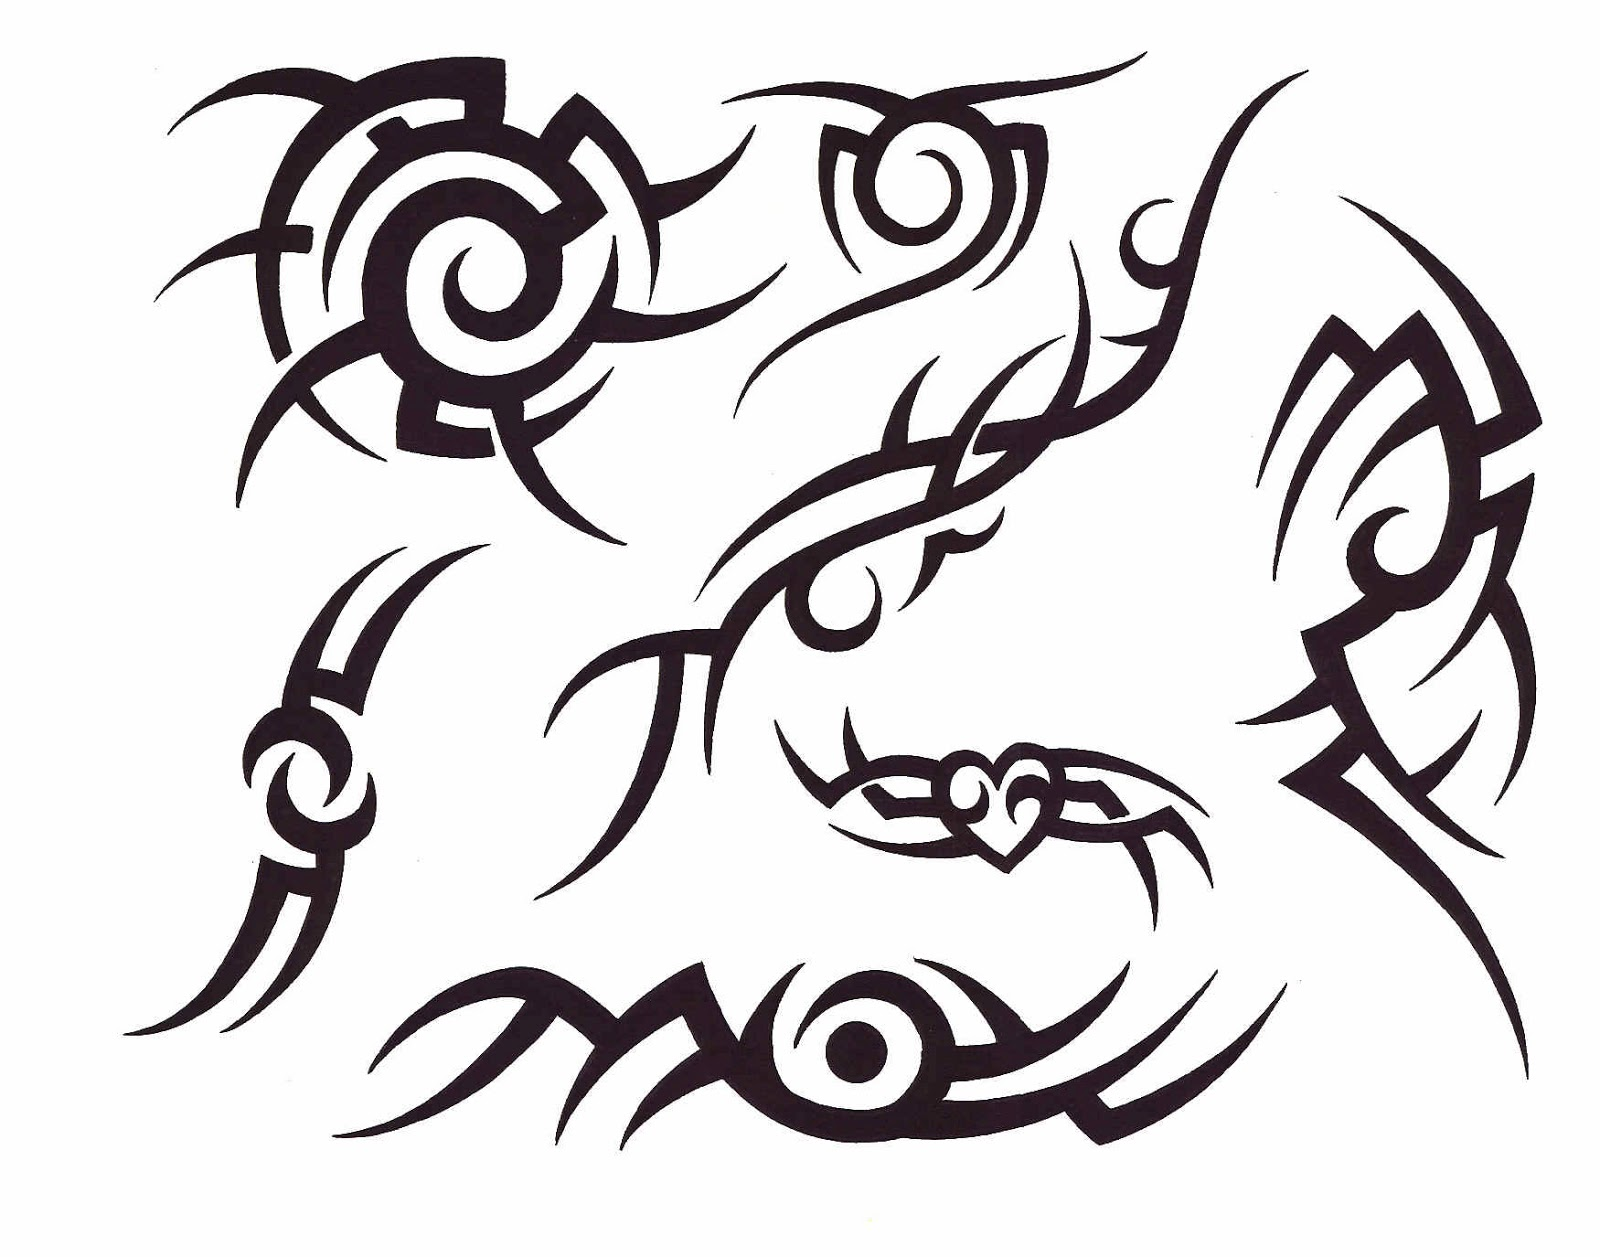 Apologise, Tribal tattoo designs